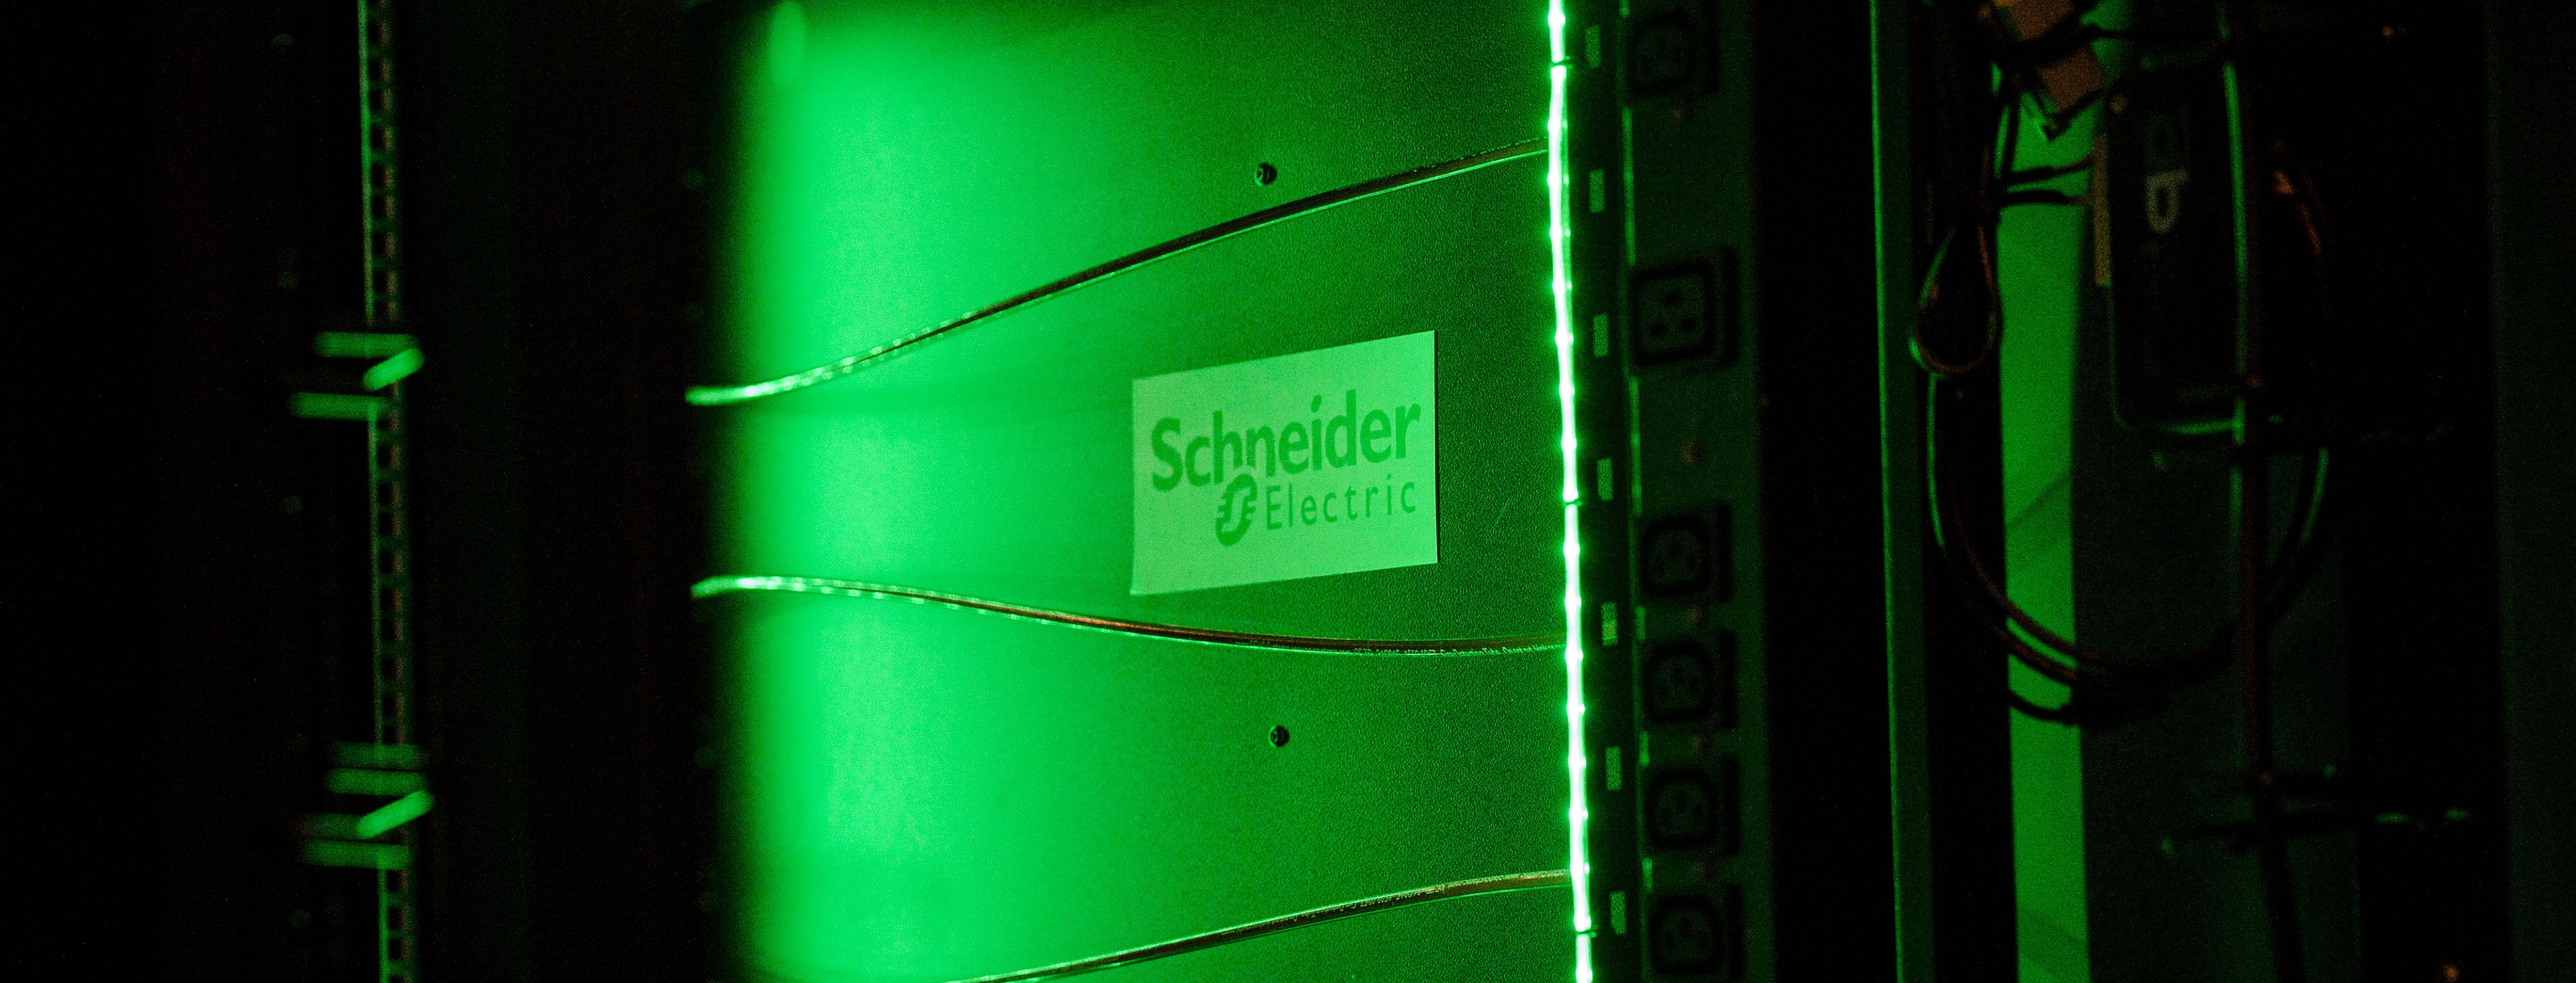 Schneider Electric SA Chief Executive Officer Jean-Pascal Tricoire Speaks At Innovation Summit